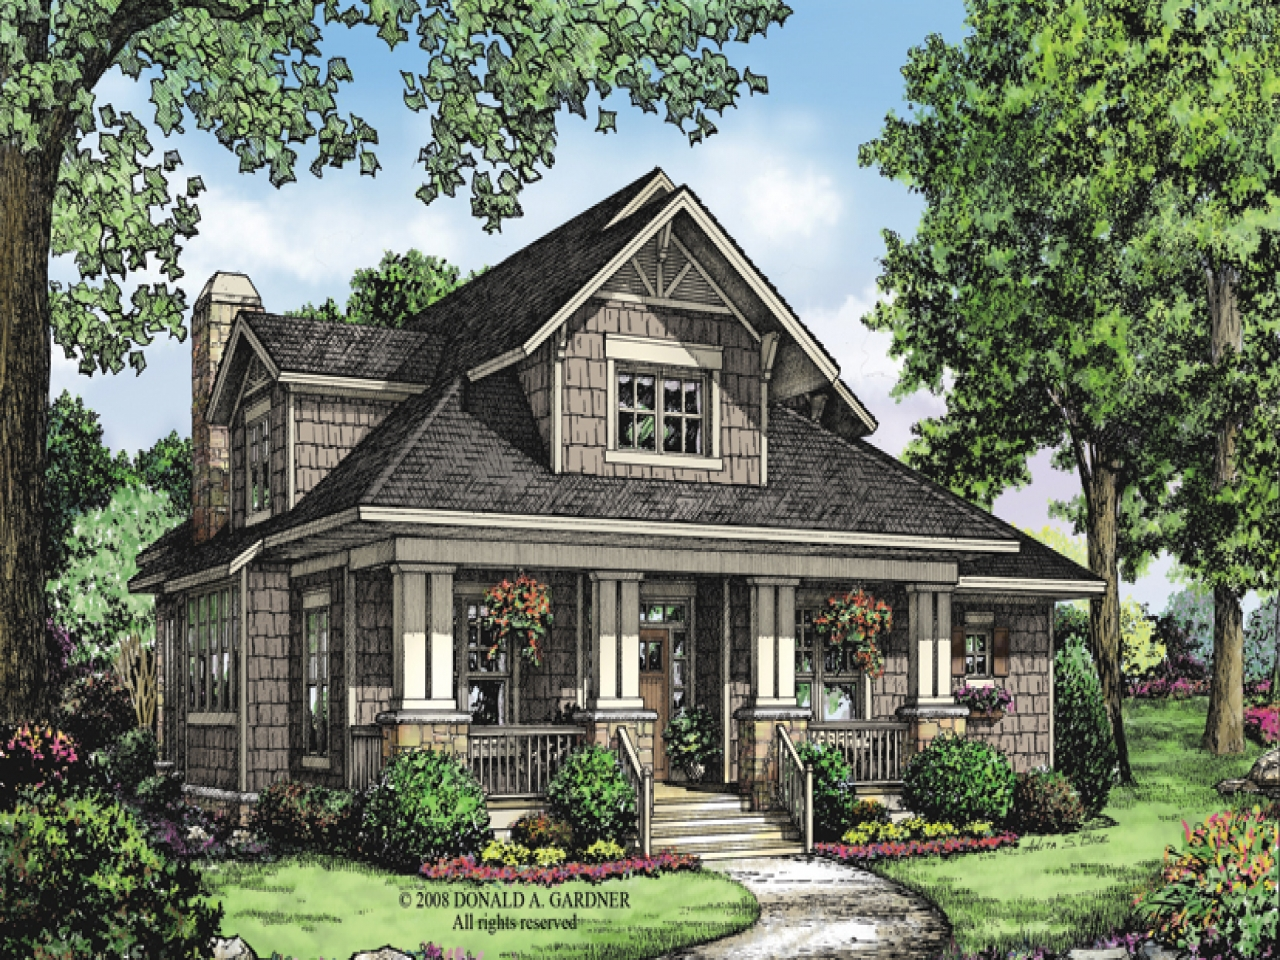 2 Story Bungalow House Plans 2 Story Bungalow Houses with